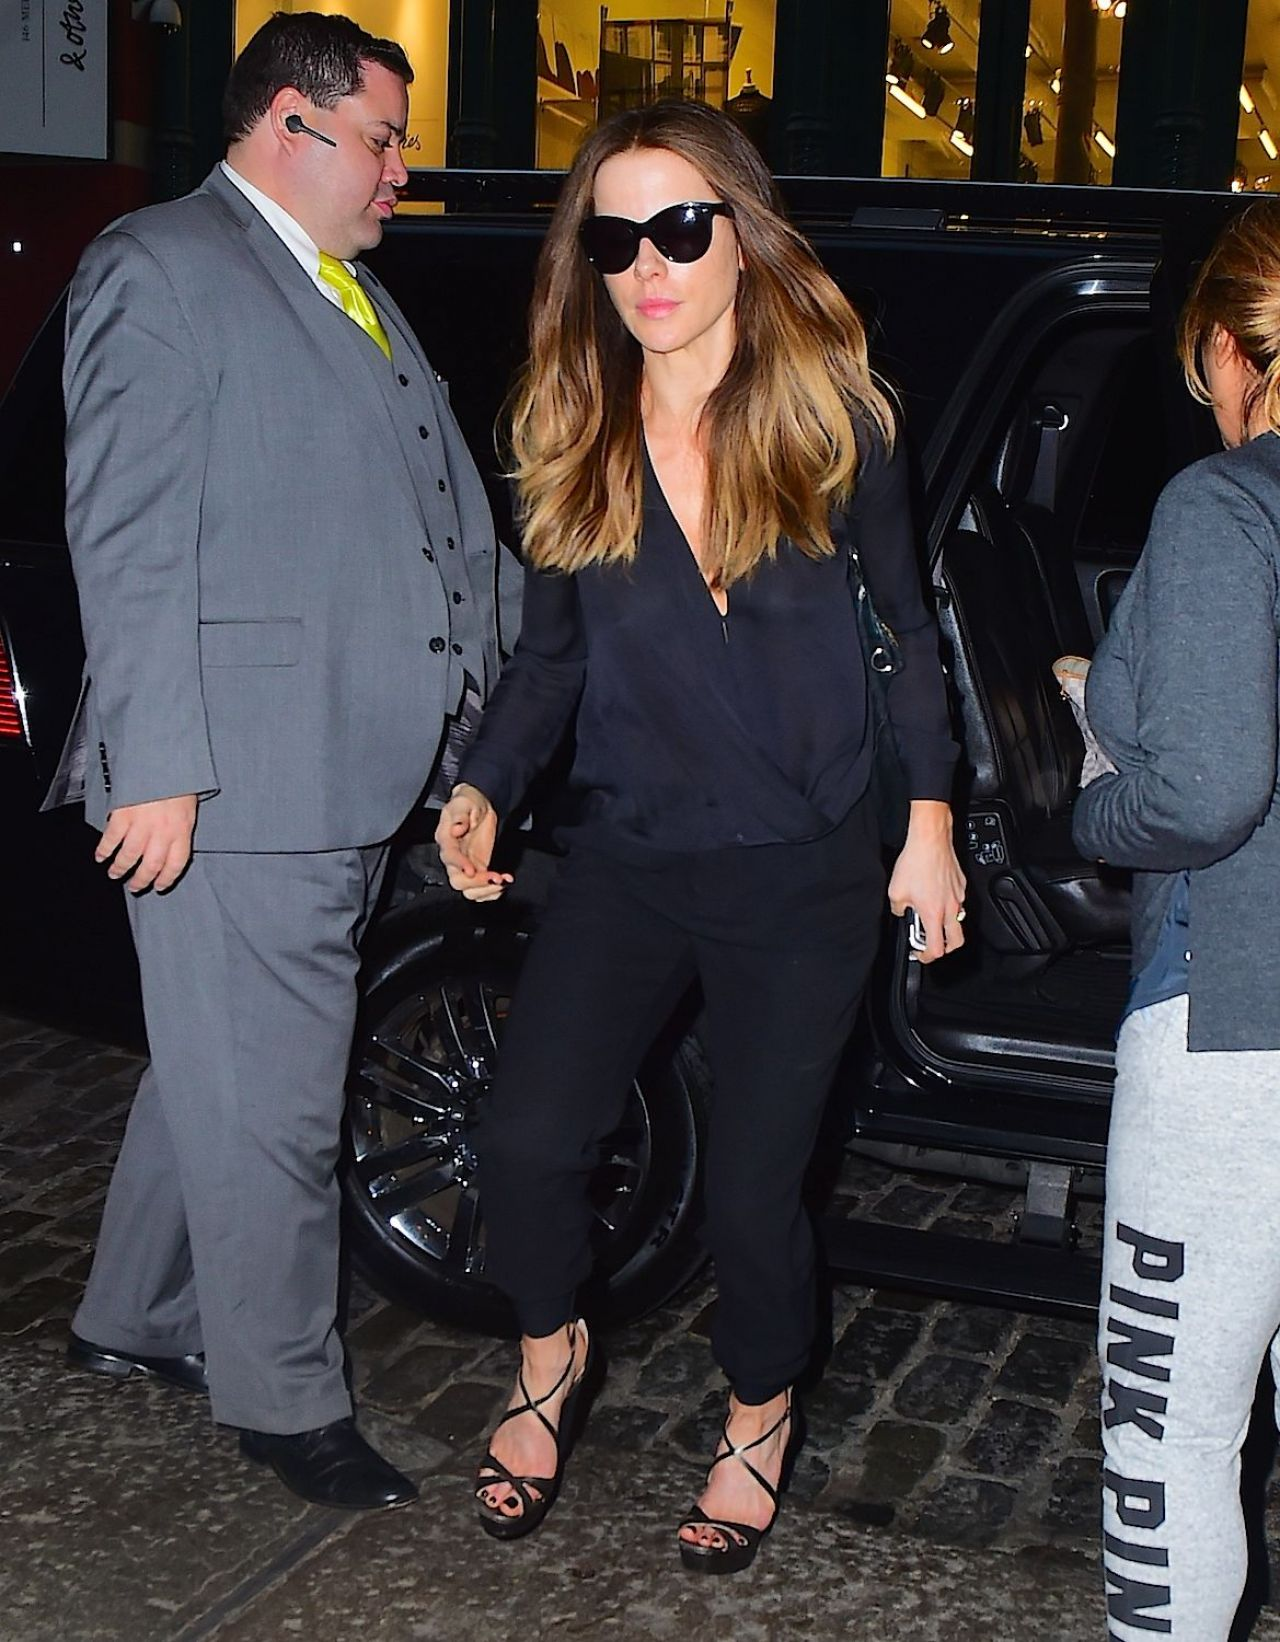 beckinsale at the mercer kitchen in new york city 10 6 2016